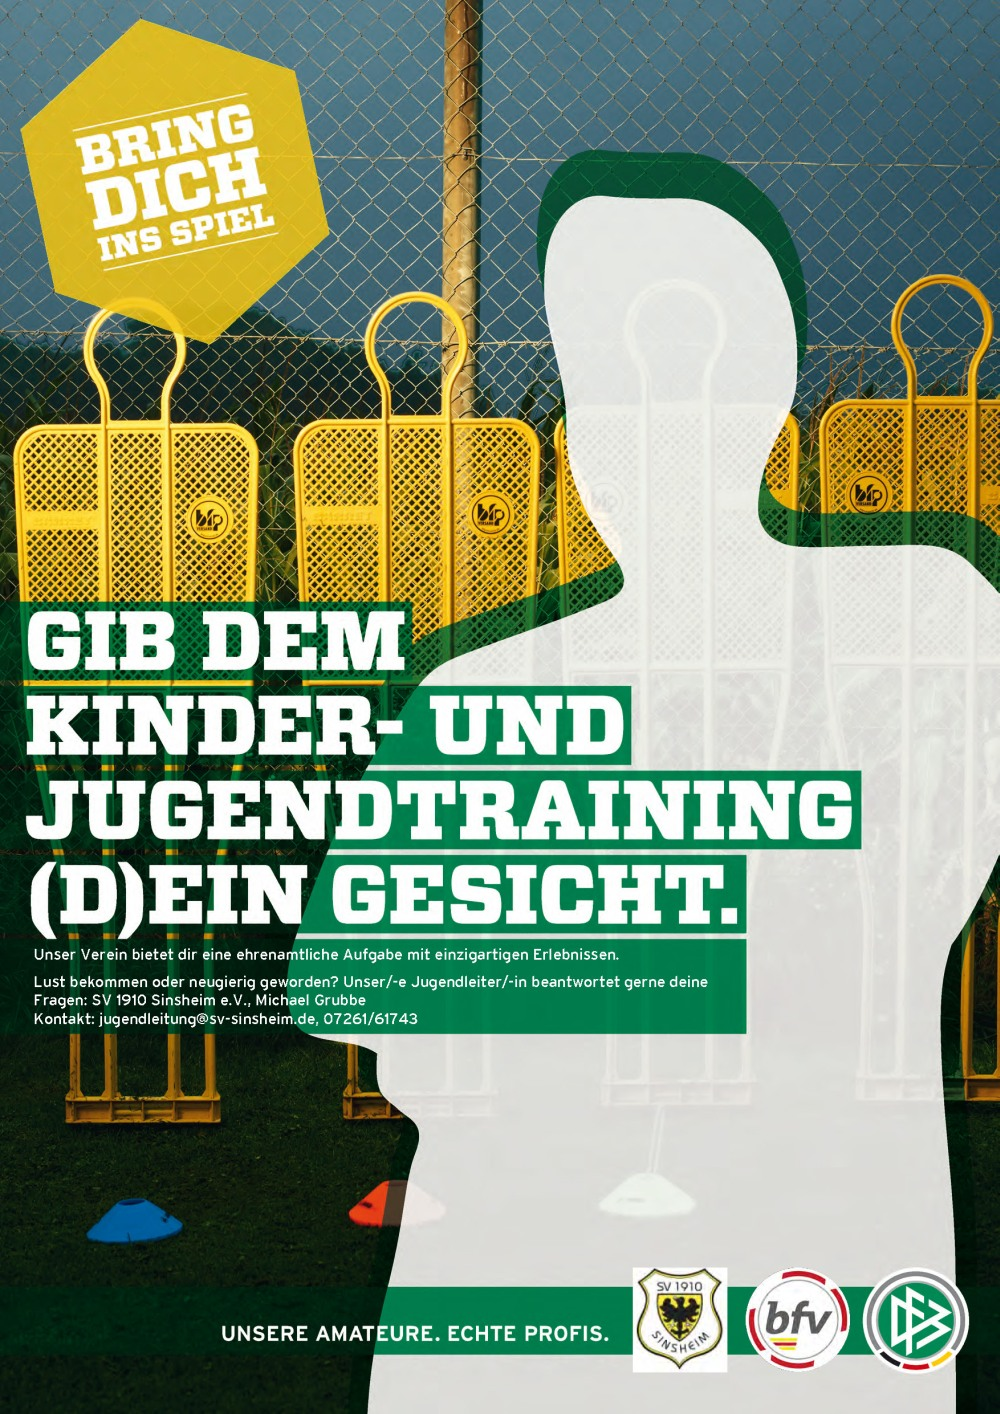 DFB Poster